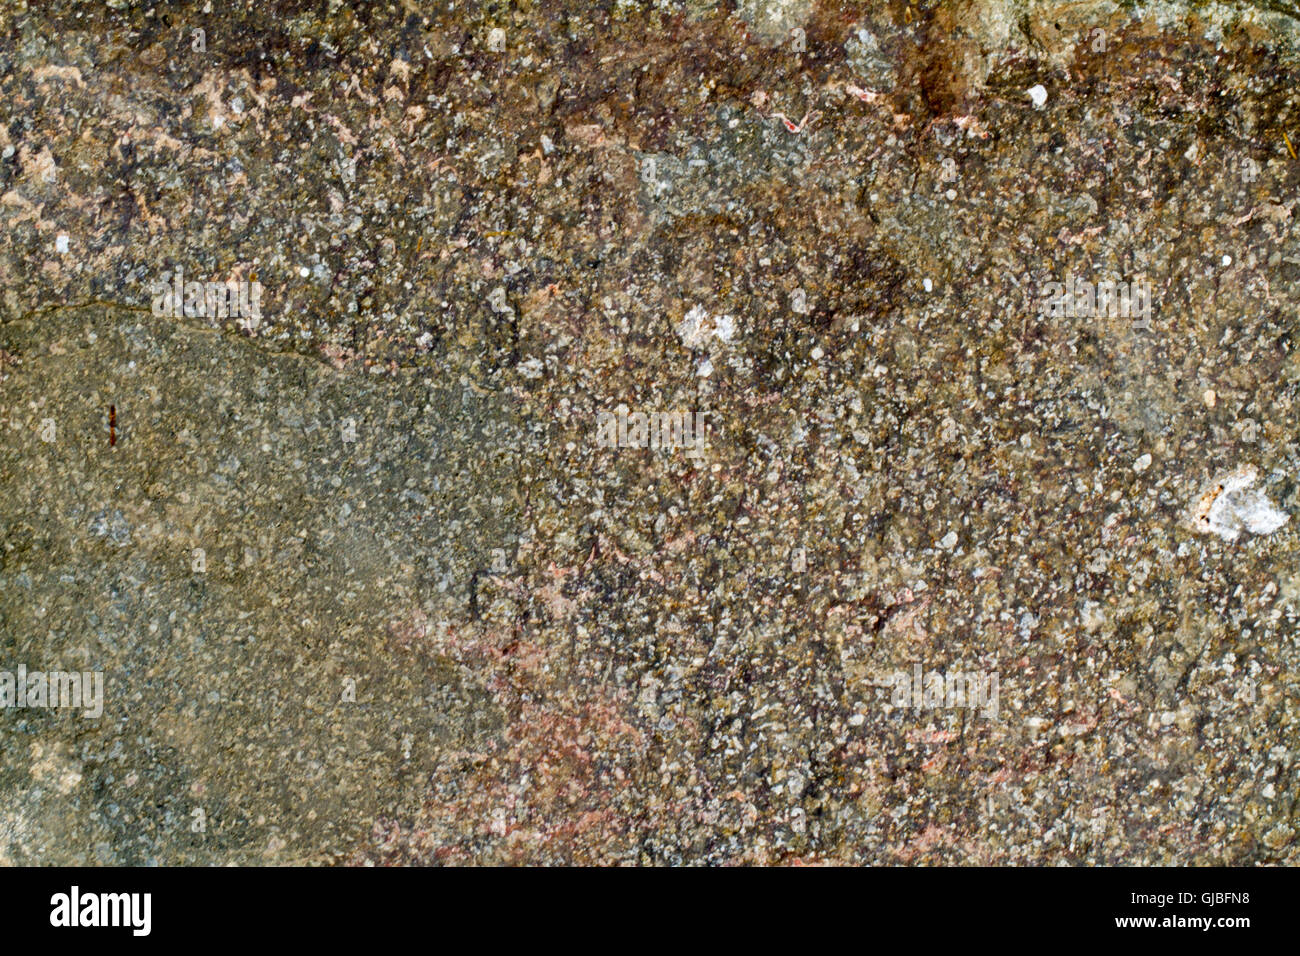 A grungy rock surface texture - Stock Image